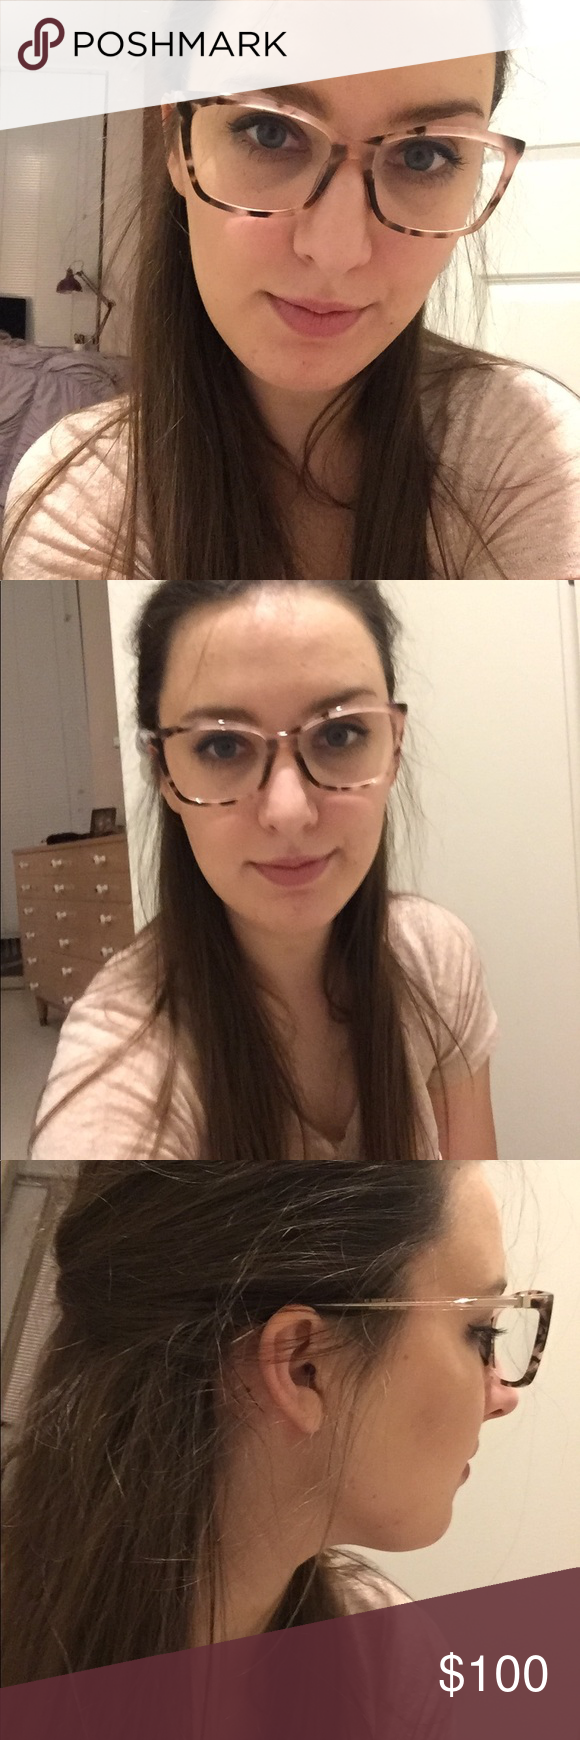 465f41b1dac Kate spade cortina frames Authentic Kate spade glasses. Low prescription  lenses. Hardly ever used. Light pink tortoise design. Comes with case which  doesn t ...